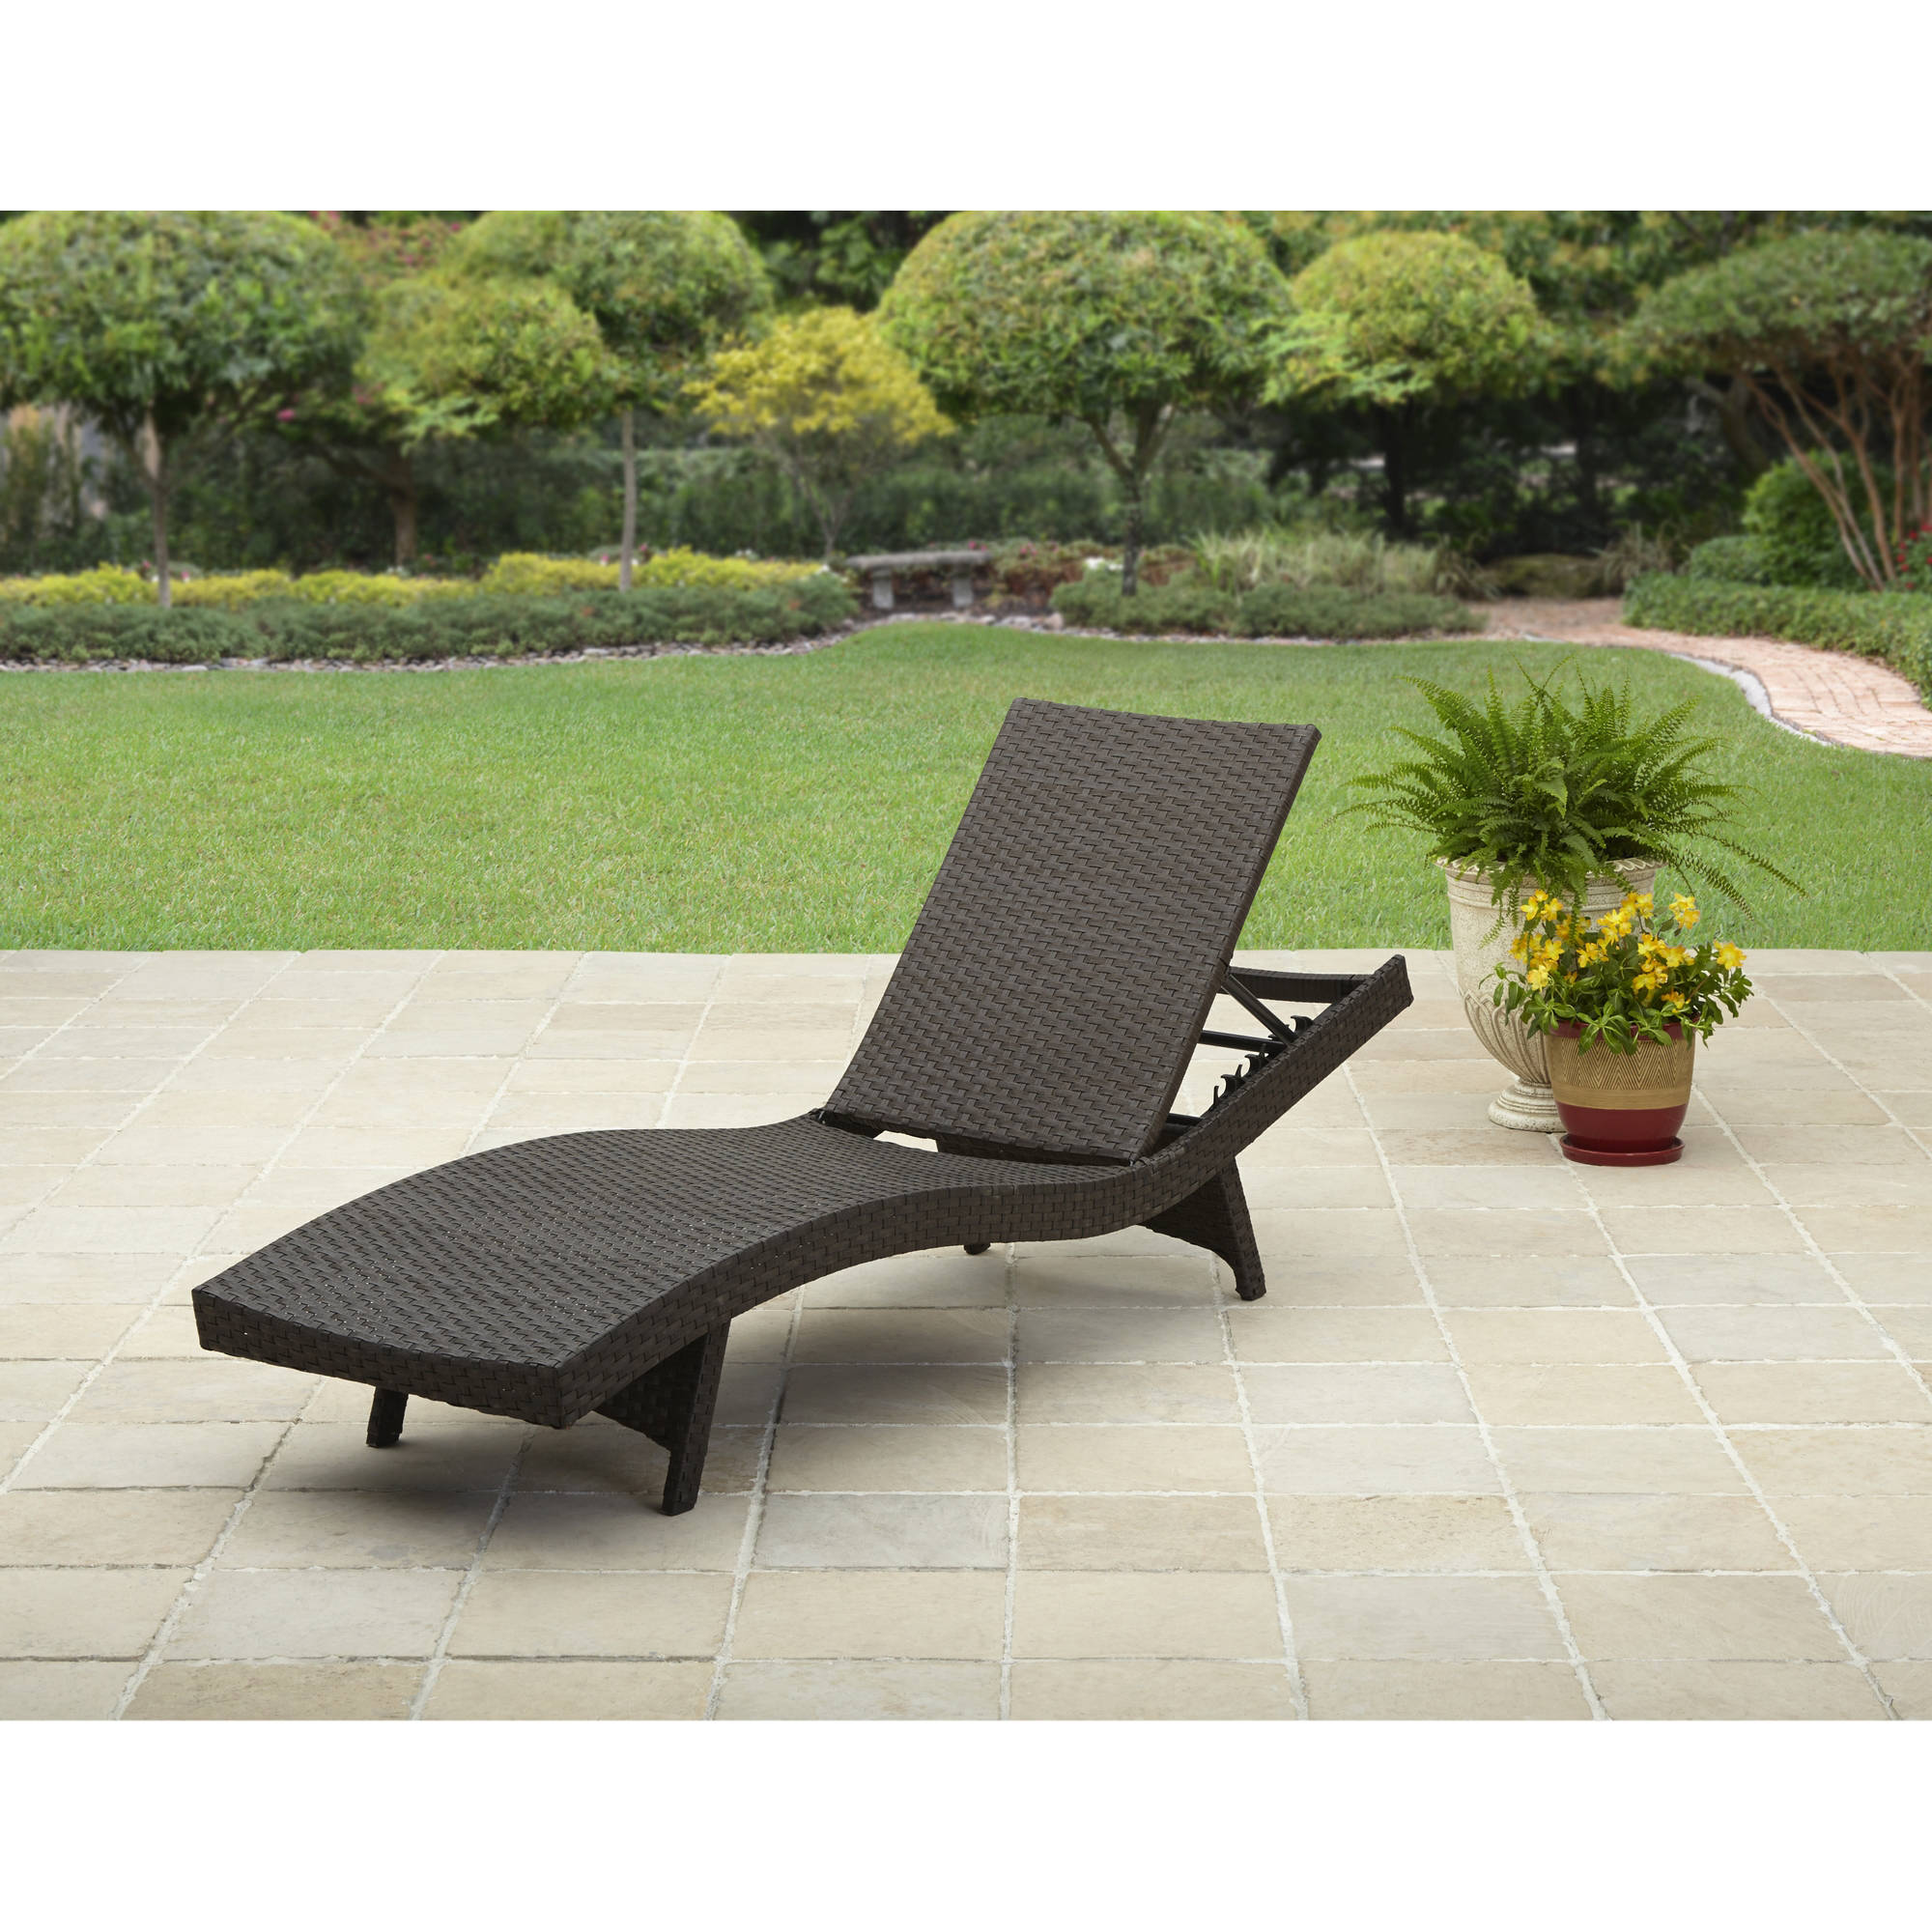 Better Homes and Gardens Avila Beach Chaise Walmart